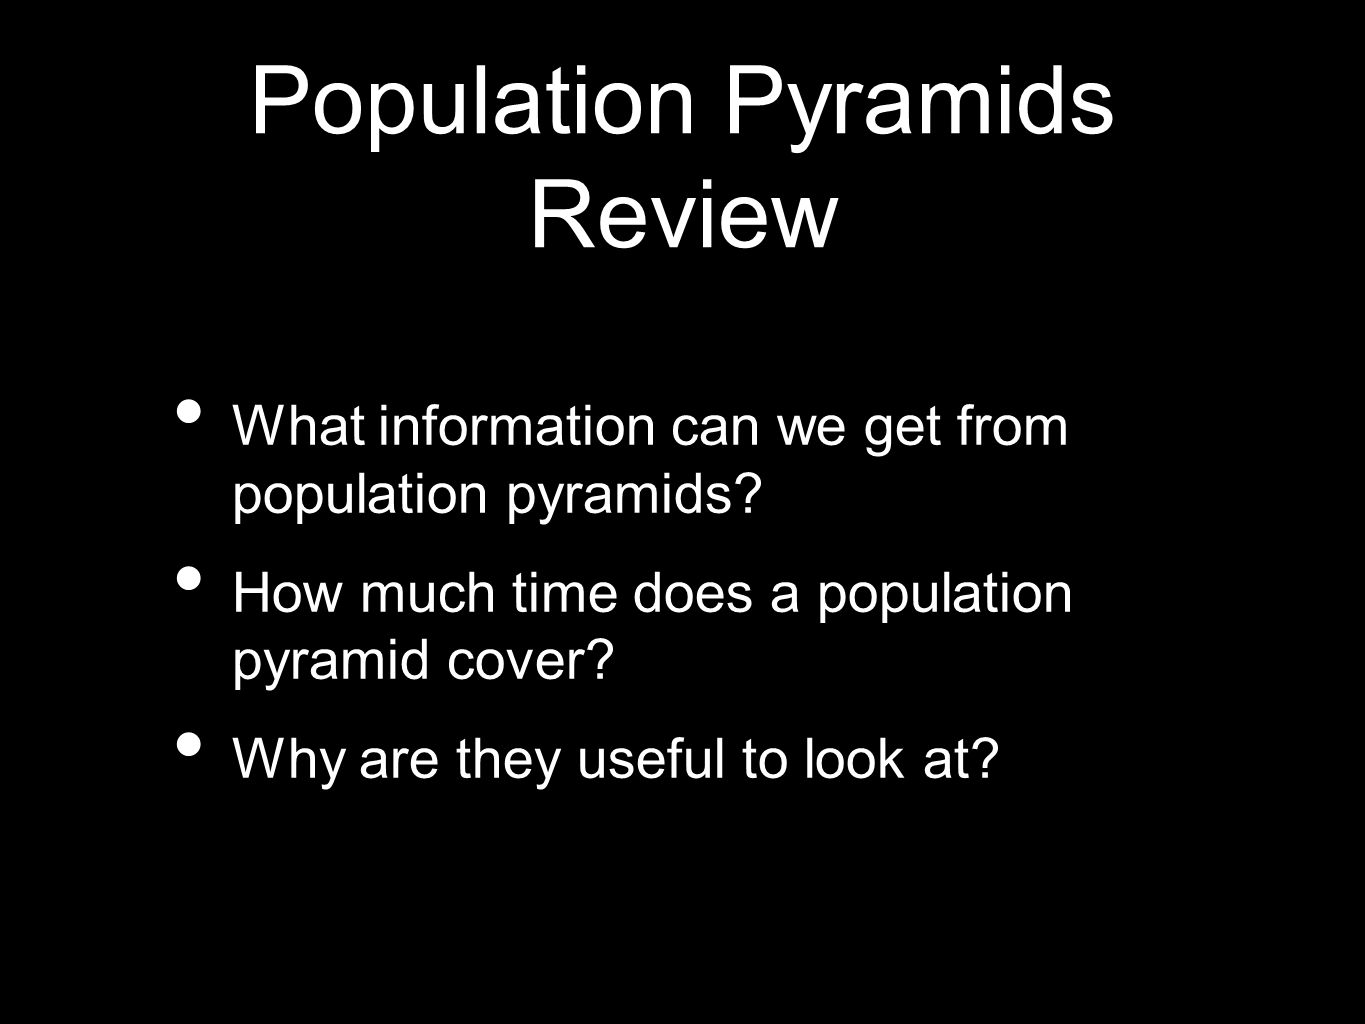 Population Pyramids Review